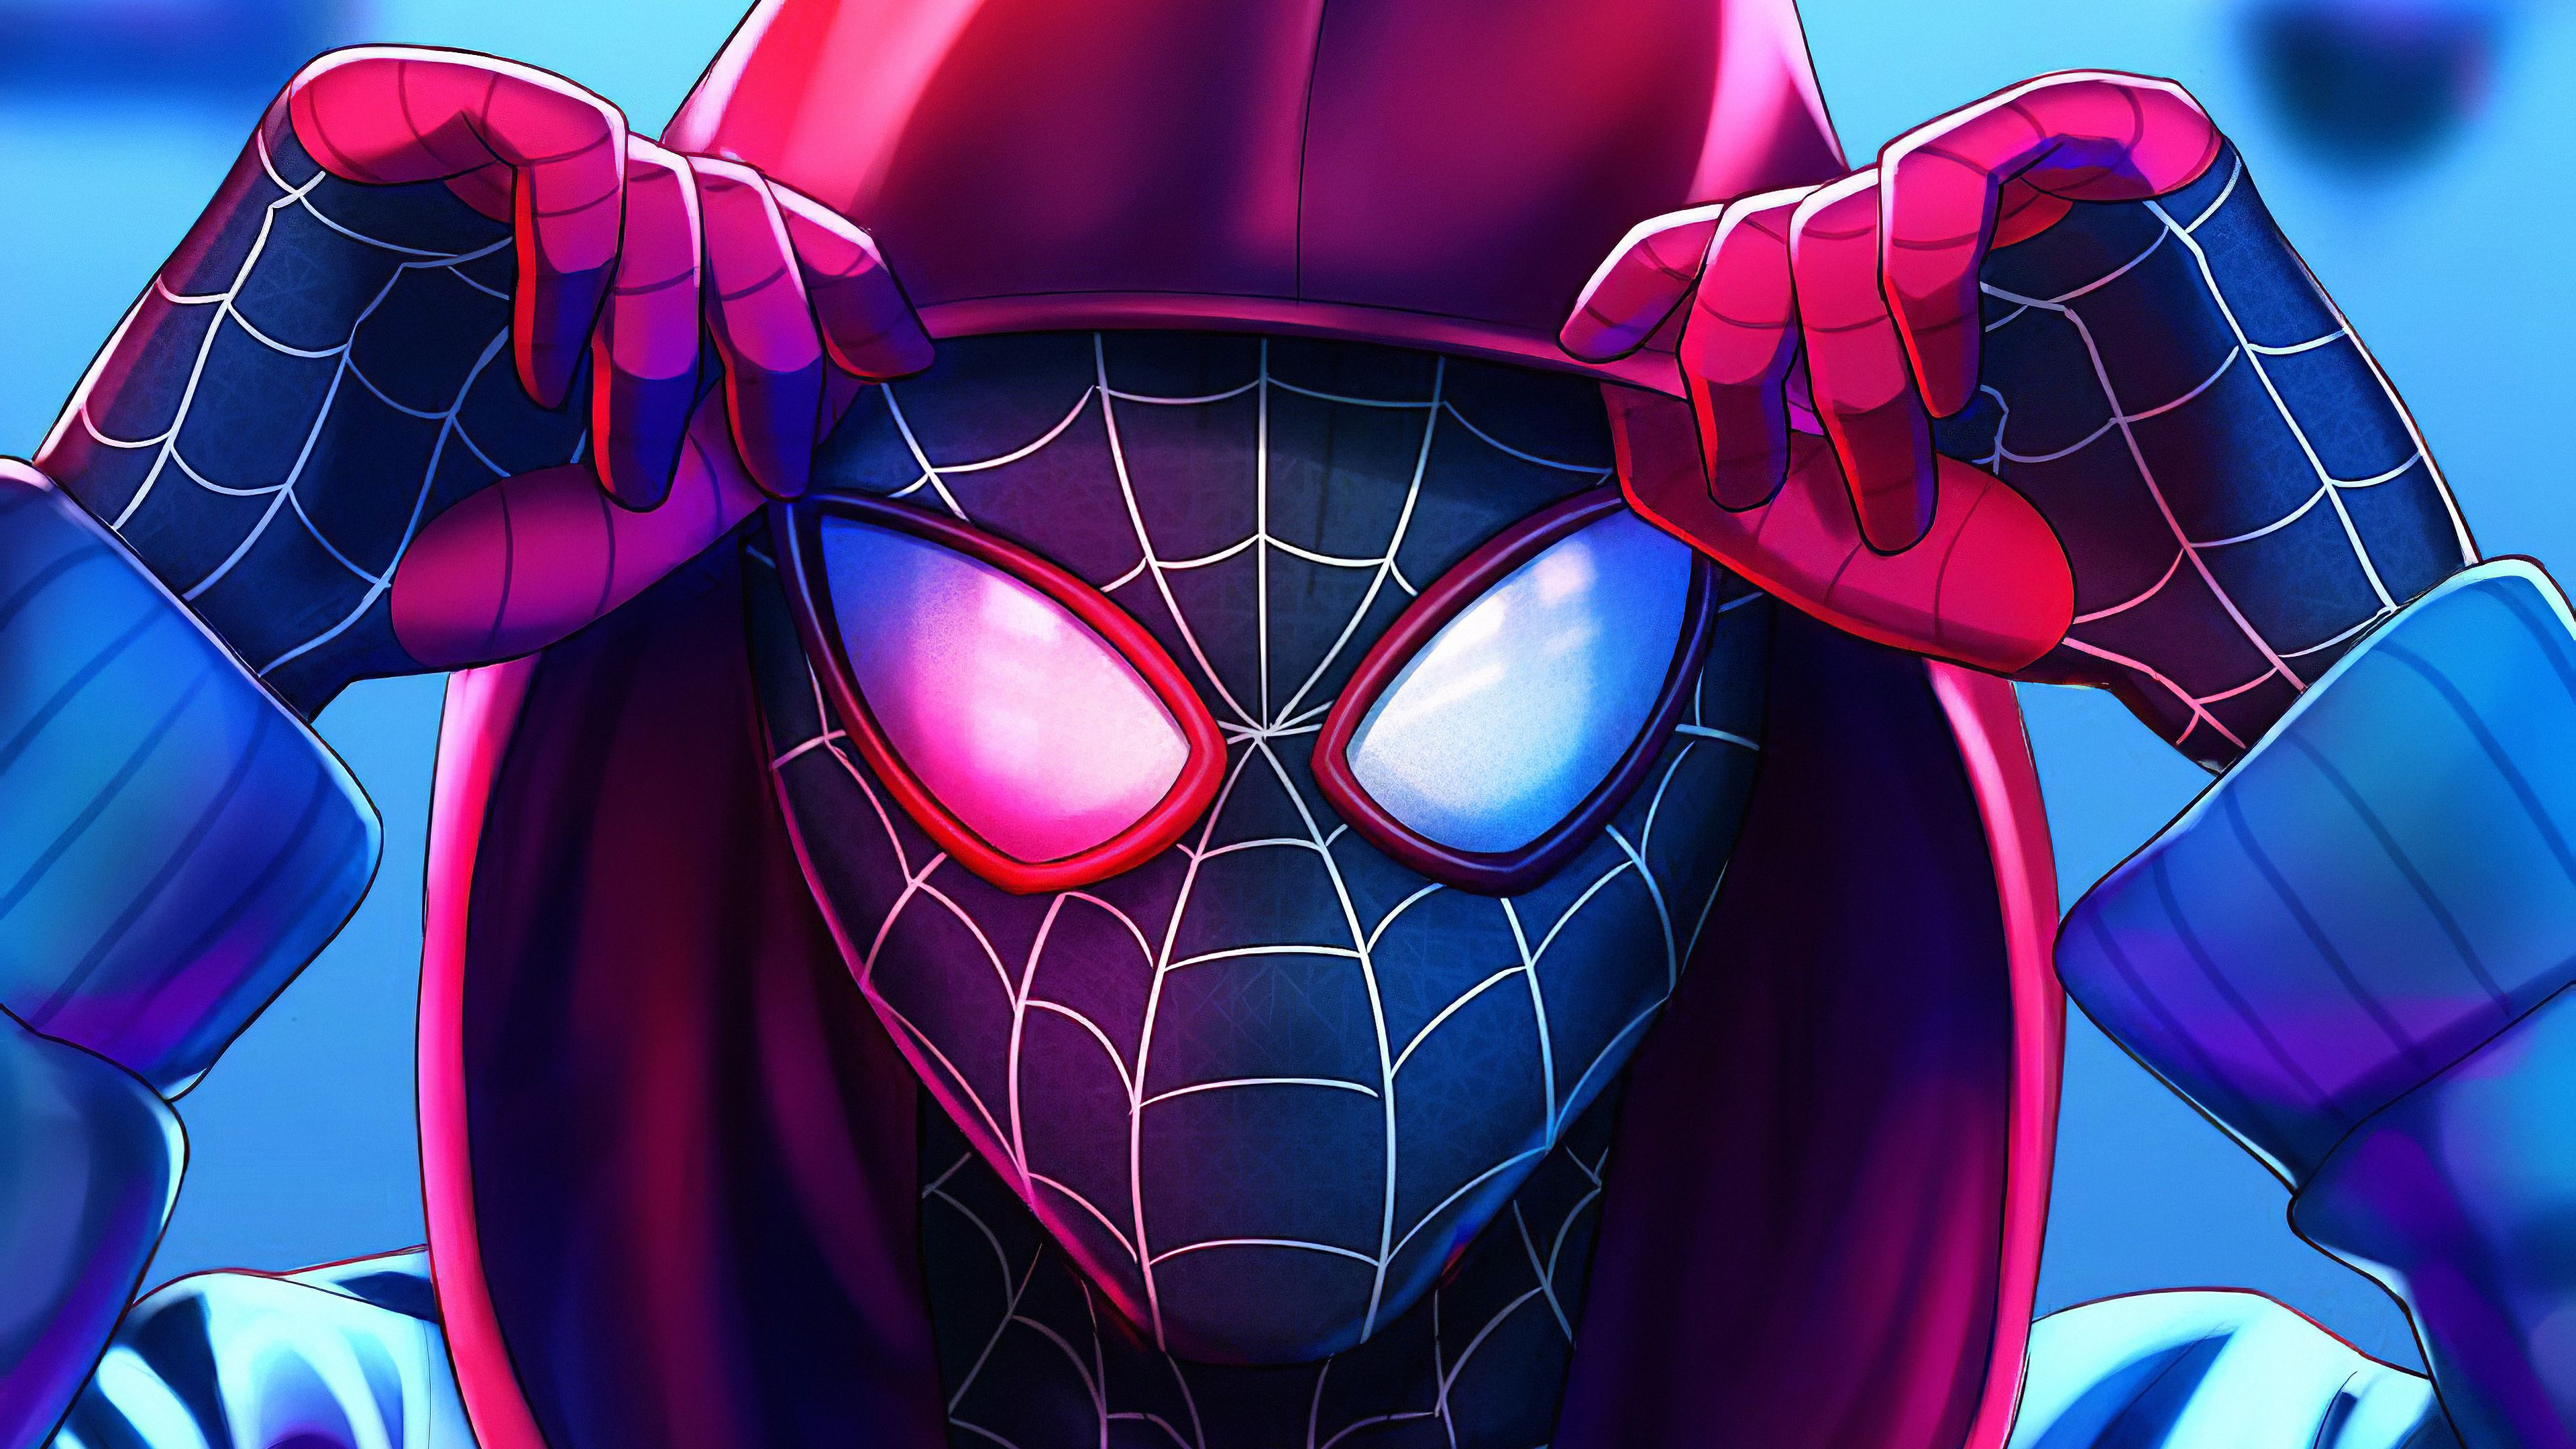 Spiderman Miles Hoodie Up Spiderman Wallpaper Phone Hd 4k Spiderman Wallpaper 4k Hd Spiderman Art Wallpaper Hd 4k Spid Spiderman Spiderman Art Avengers Team